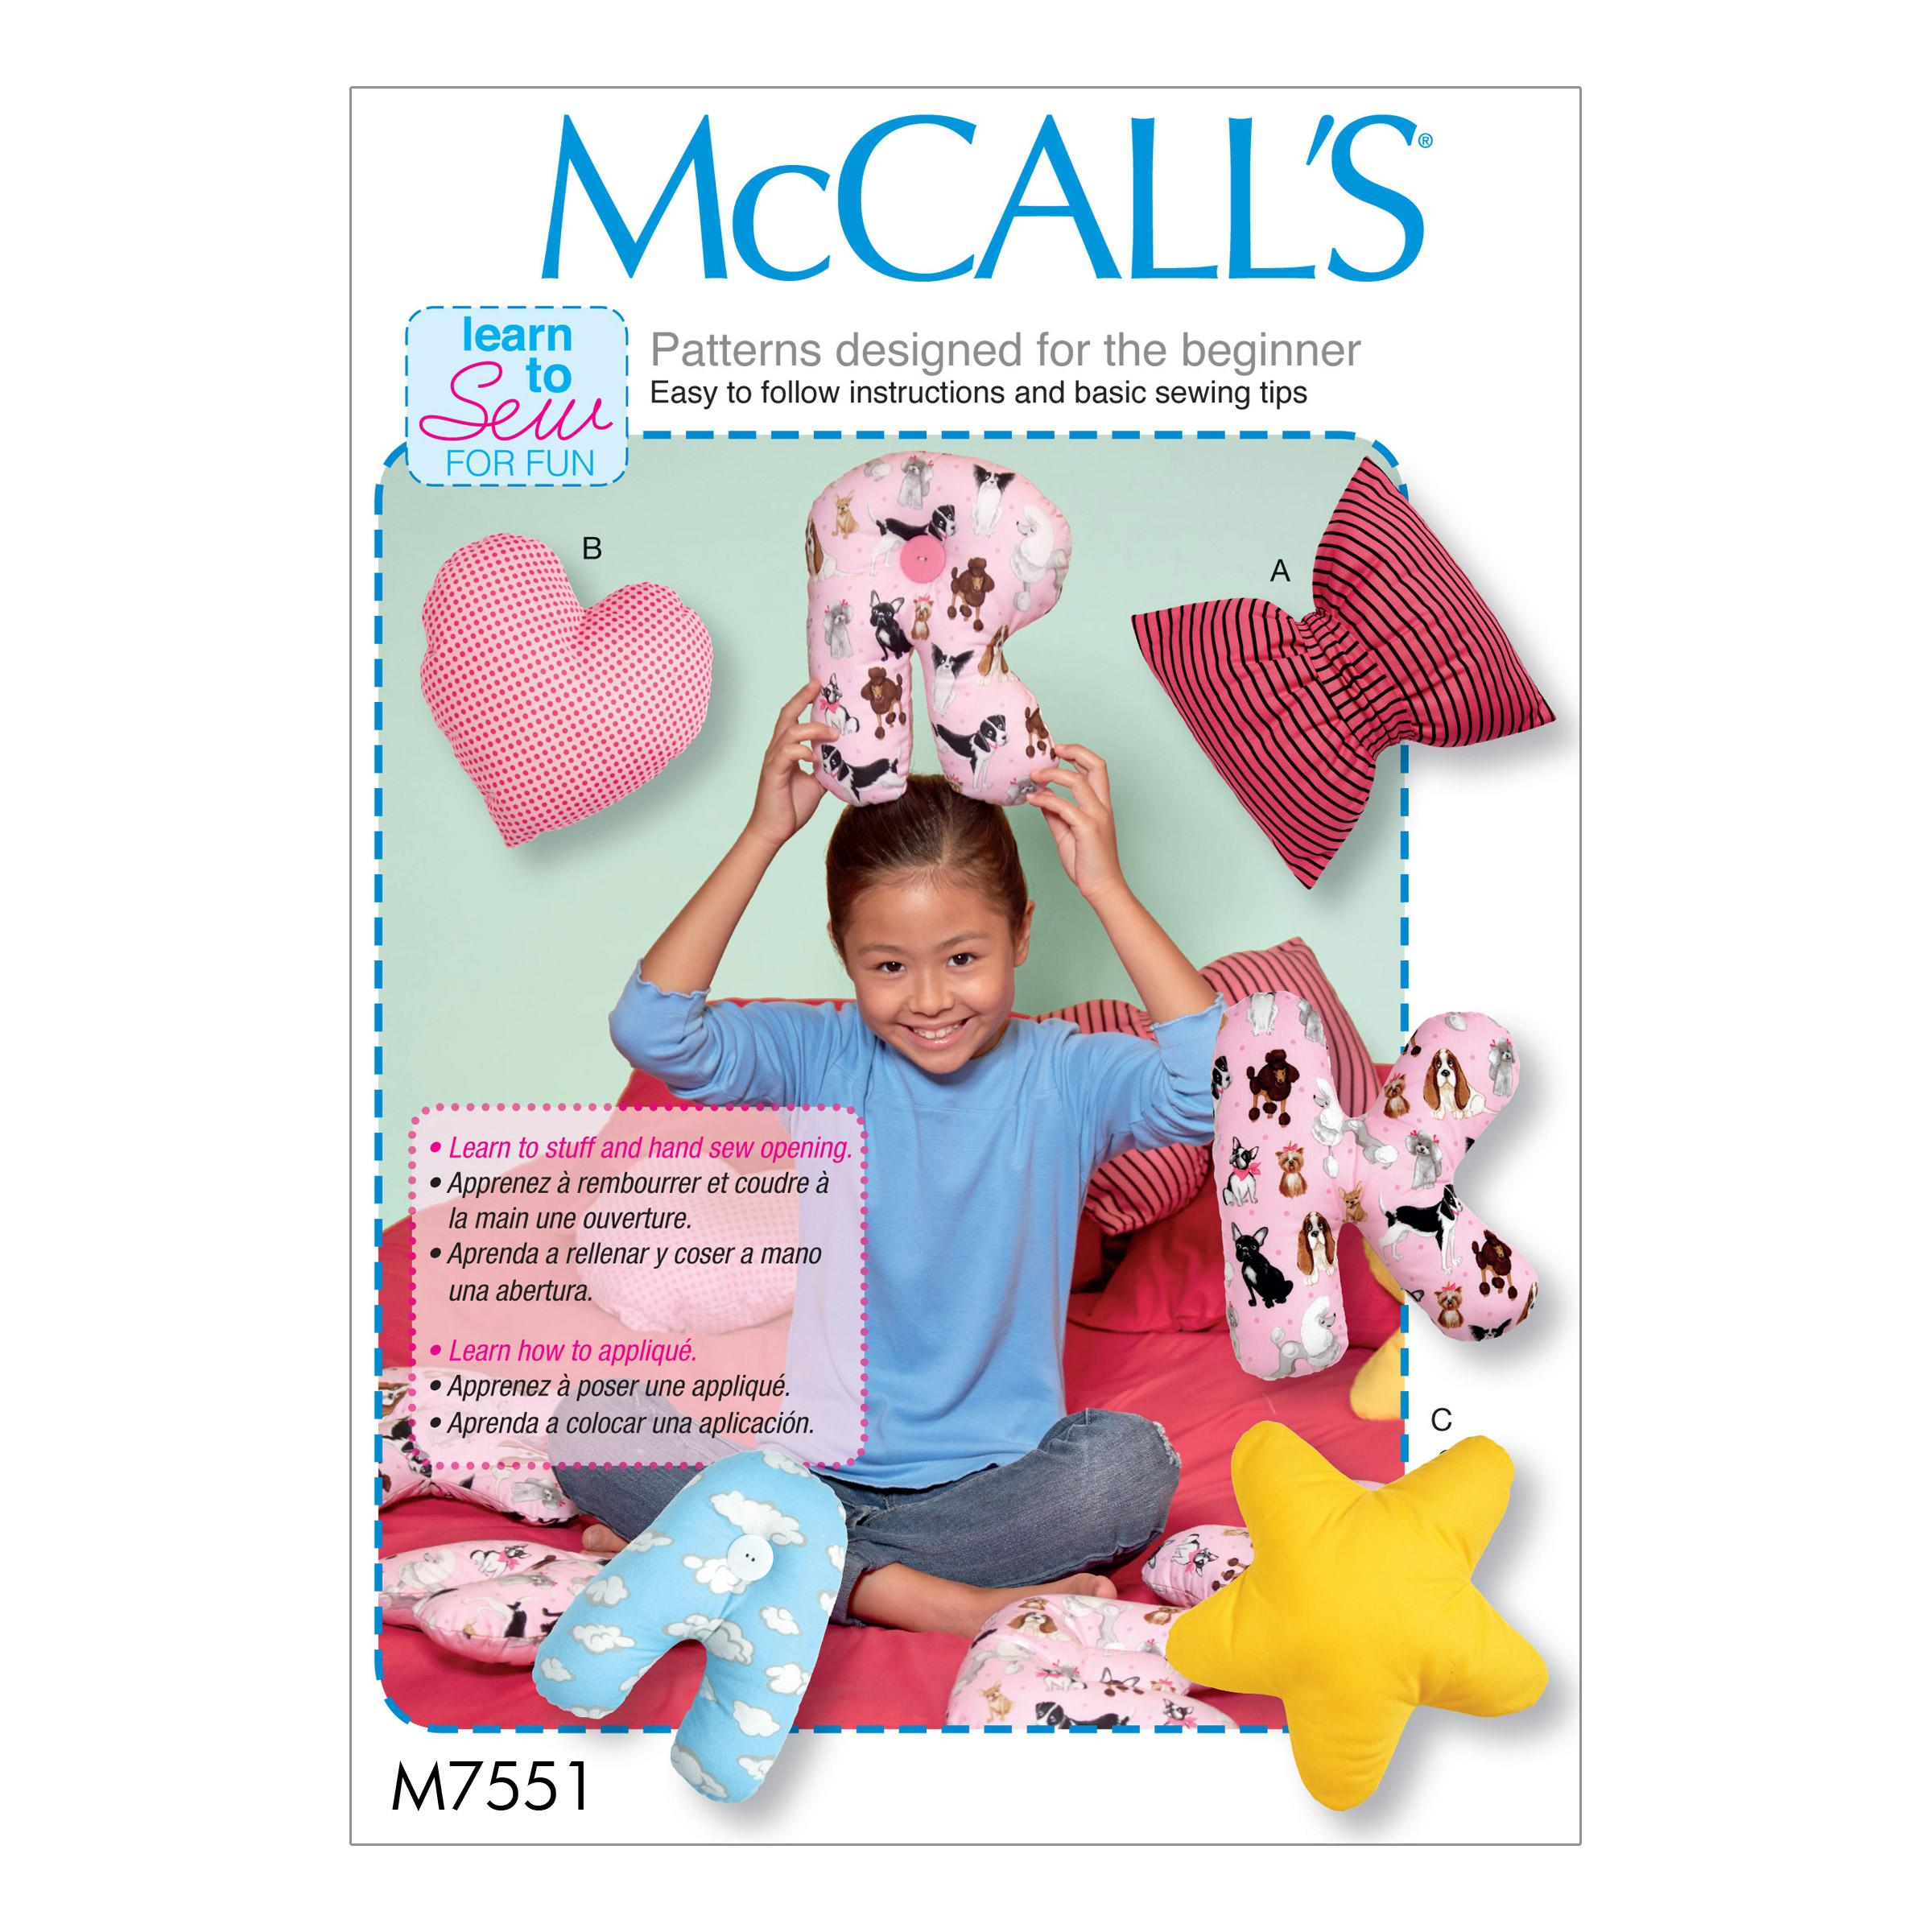 McCalls M7551 Crafts Dolls & Toys